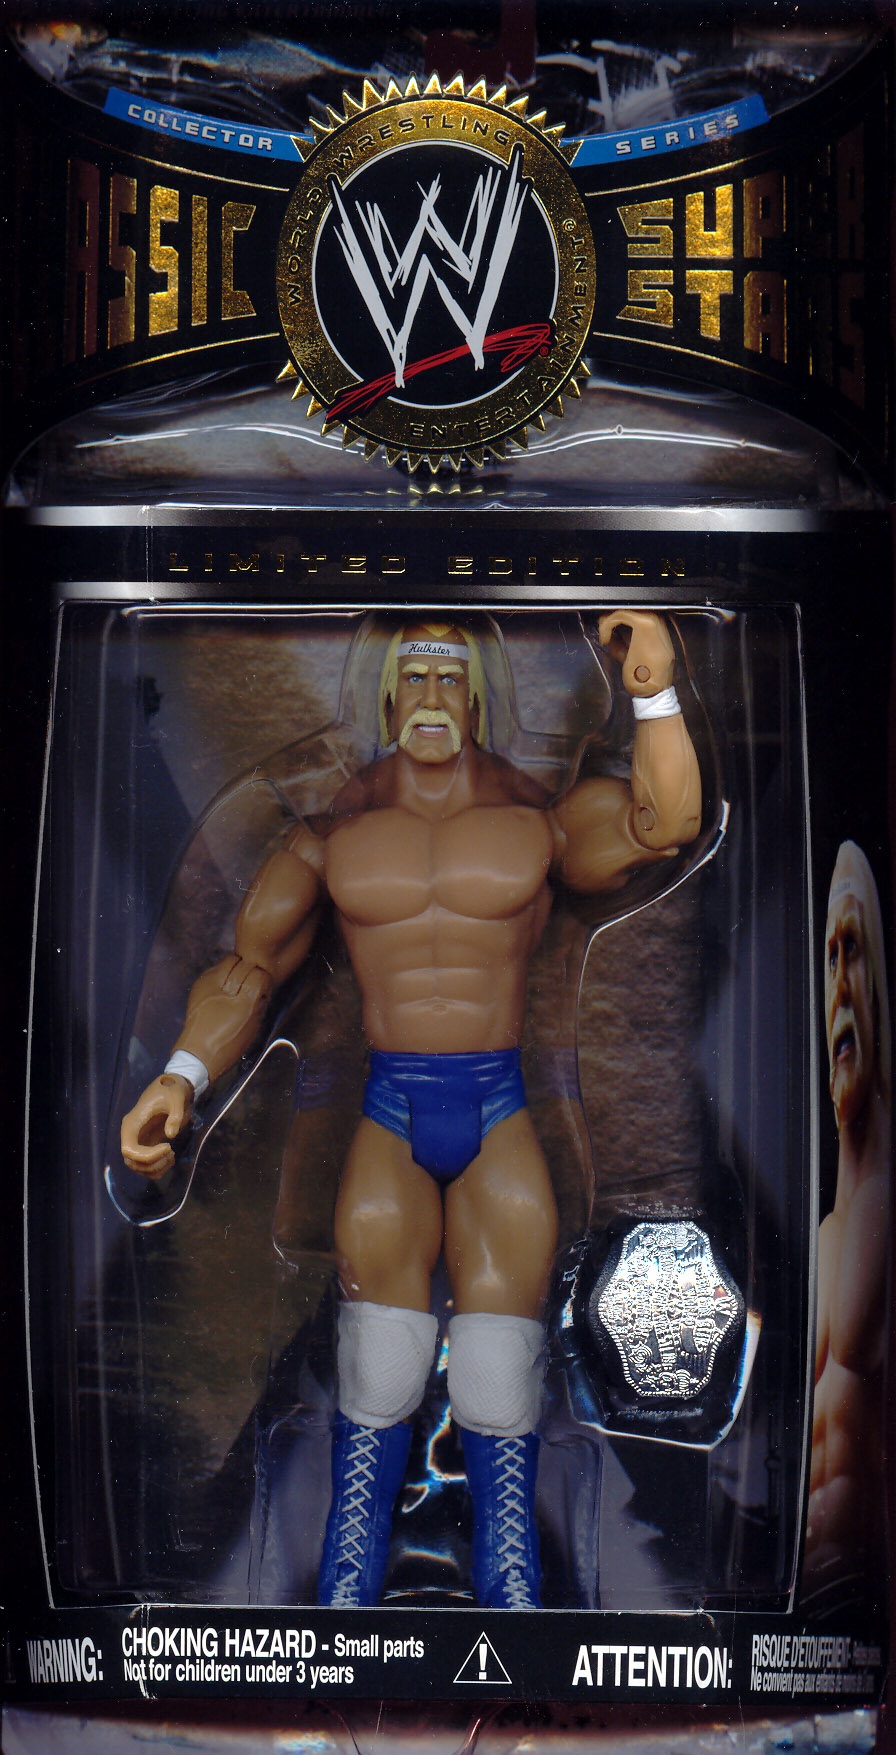 Hulk Hogan (Limited Edition, Hulkster outfit)